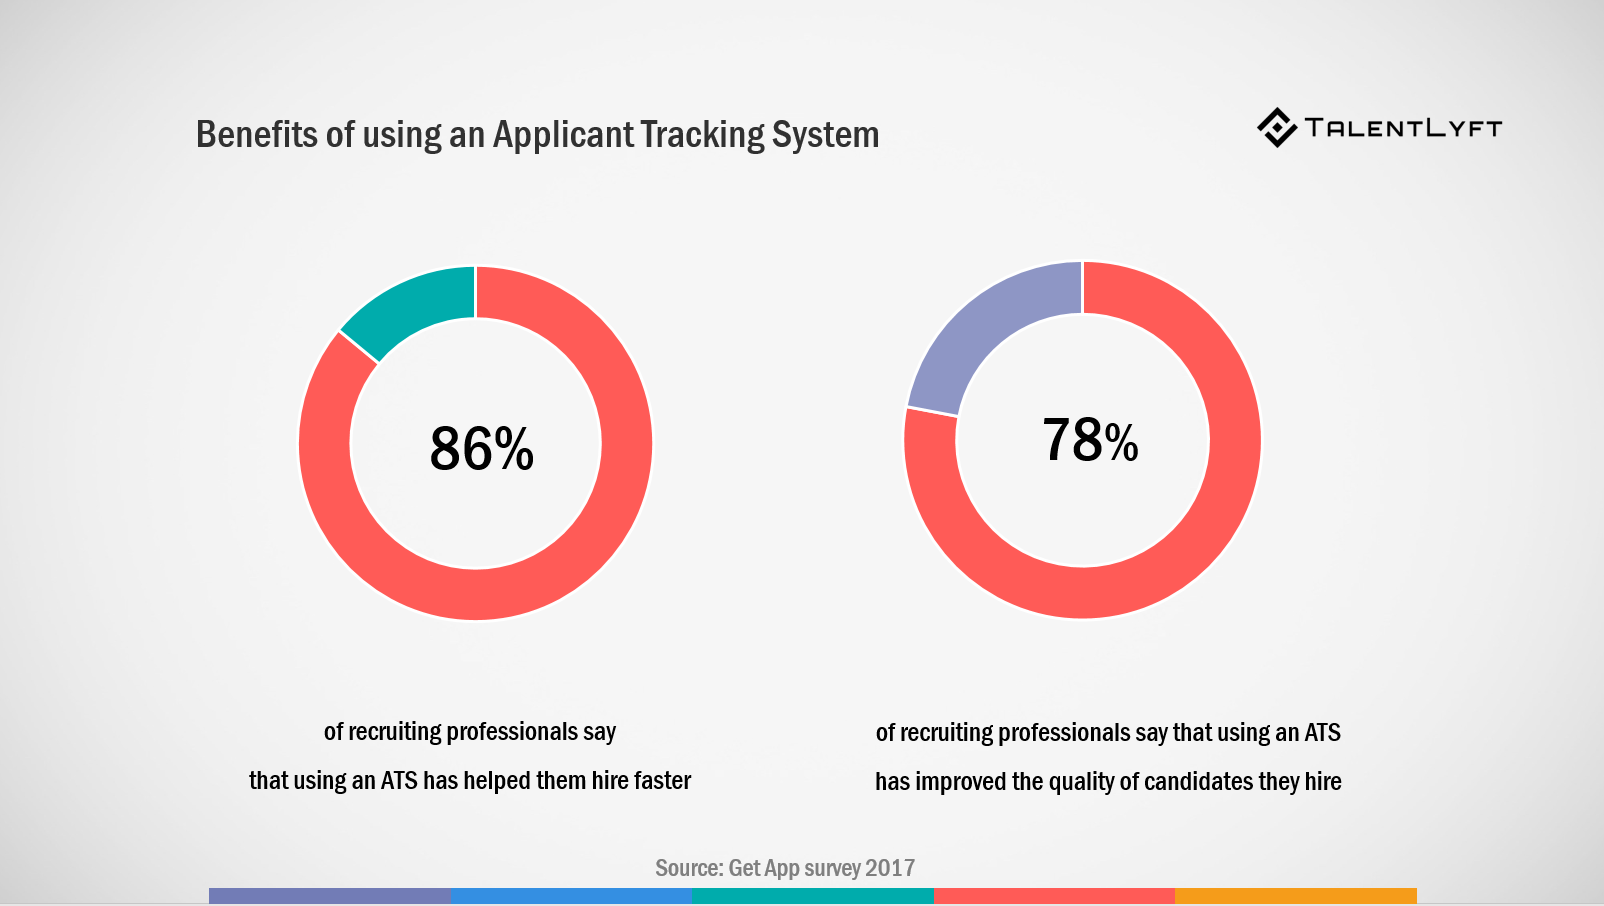 GUIDE-How-to-Find-Your-Perfect-Applicant-Tracking-System-Benefits-oF-using-an-ATS